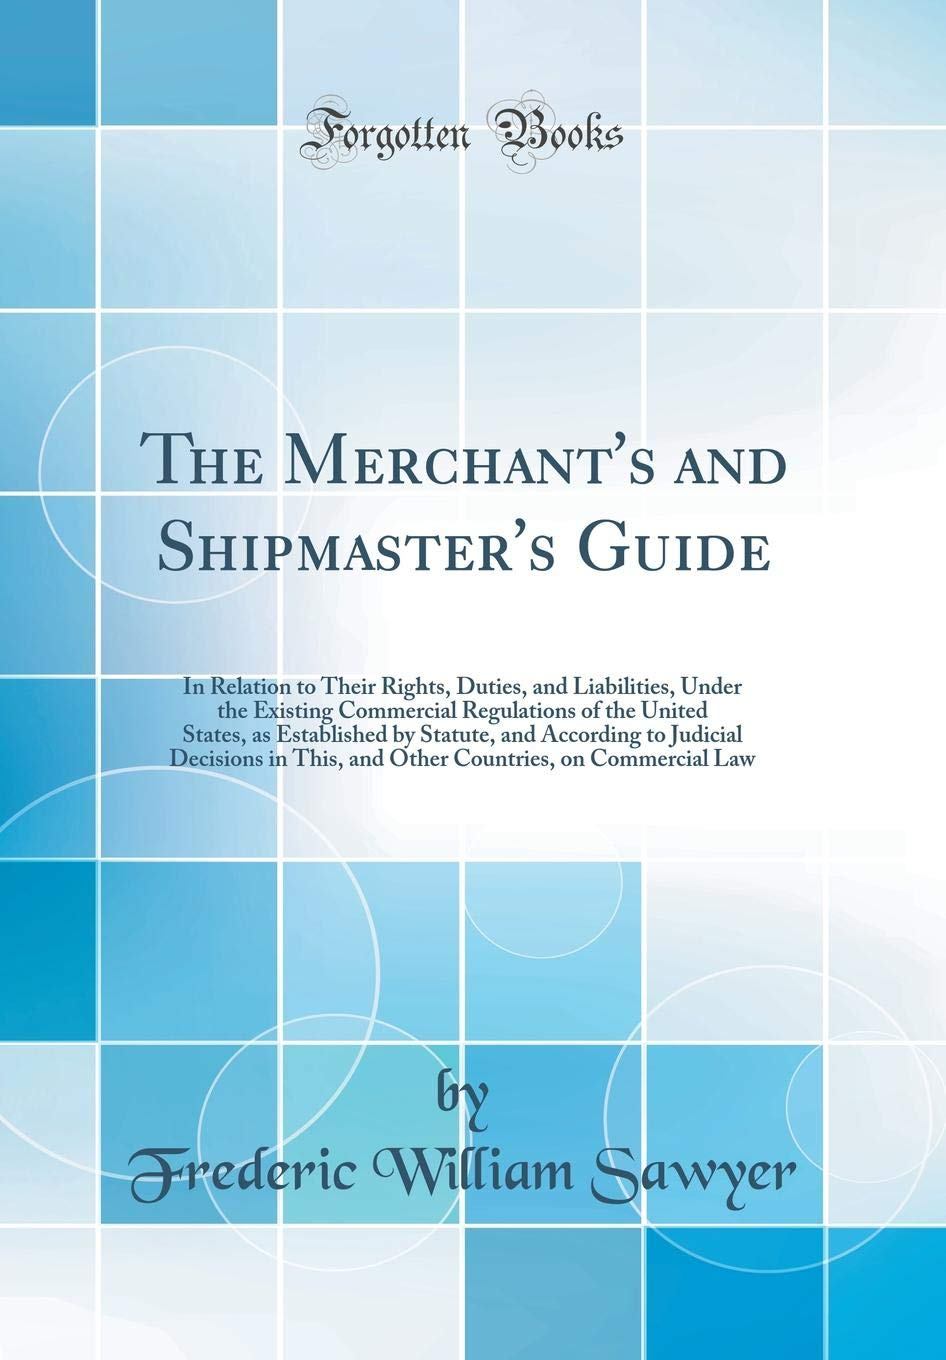 Download The Merchant's and Shipmaster's Guide: In Relation to Their Rights, Duties, and Liabilities, Under the Existing Commercial Regulations of the United ... Decisions in This, and Other Countries, on Co pdf